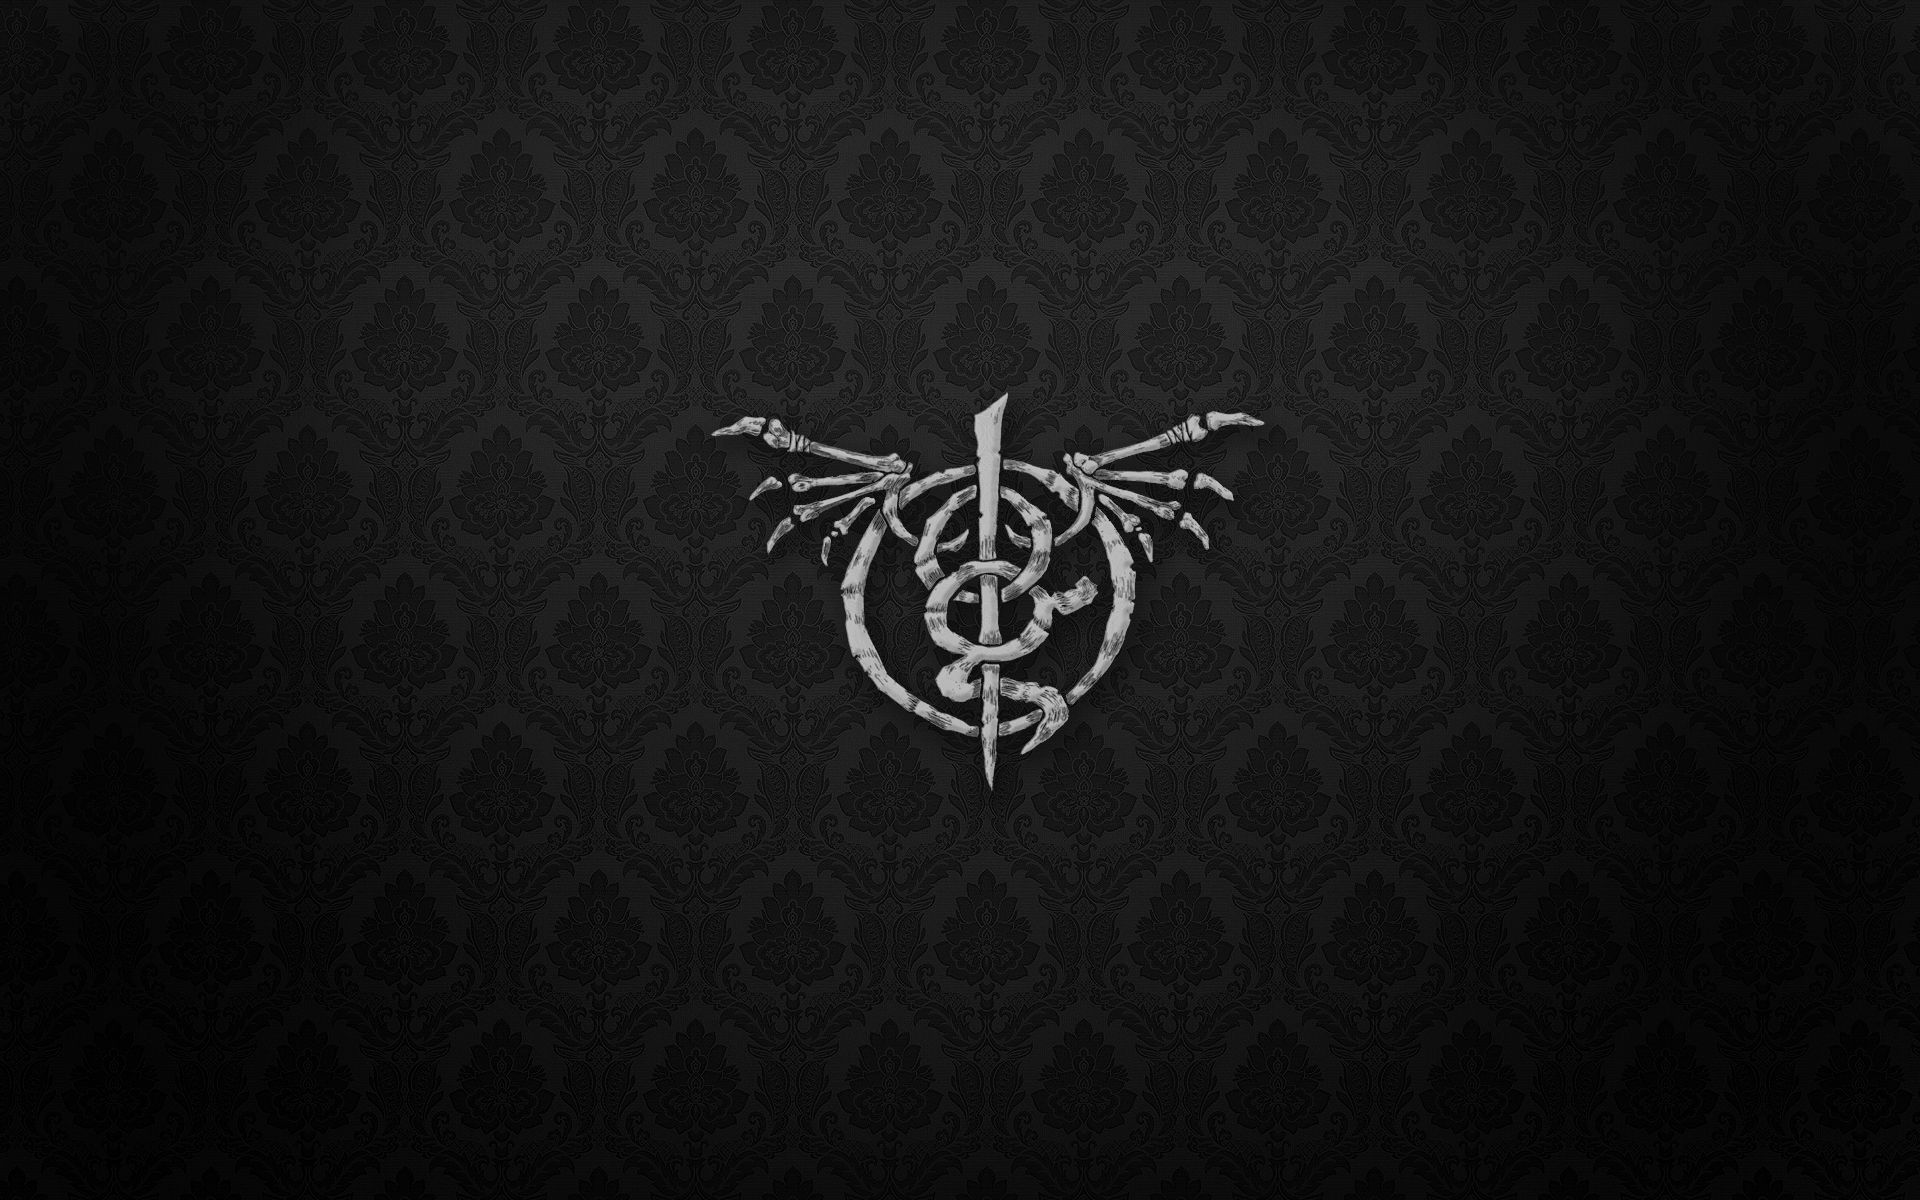 Lamb Of God American Metal Band Hd Black Wallpapers Band Wallpapers Heavy Metal Bands